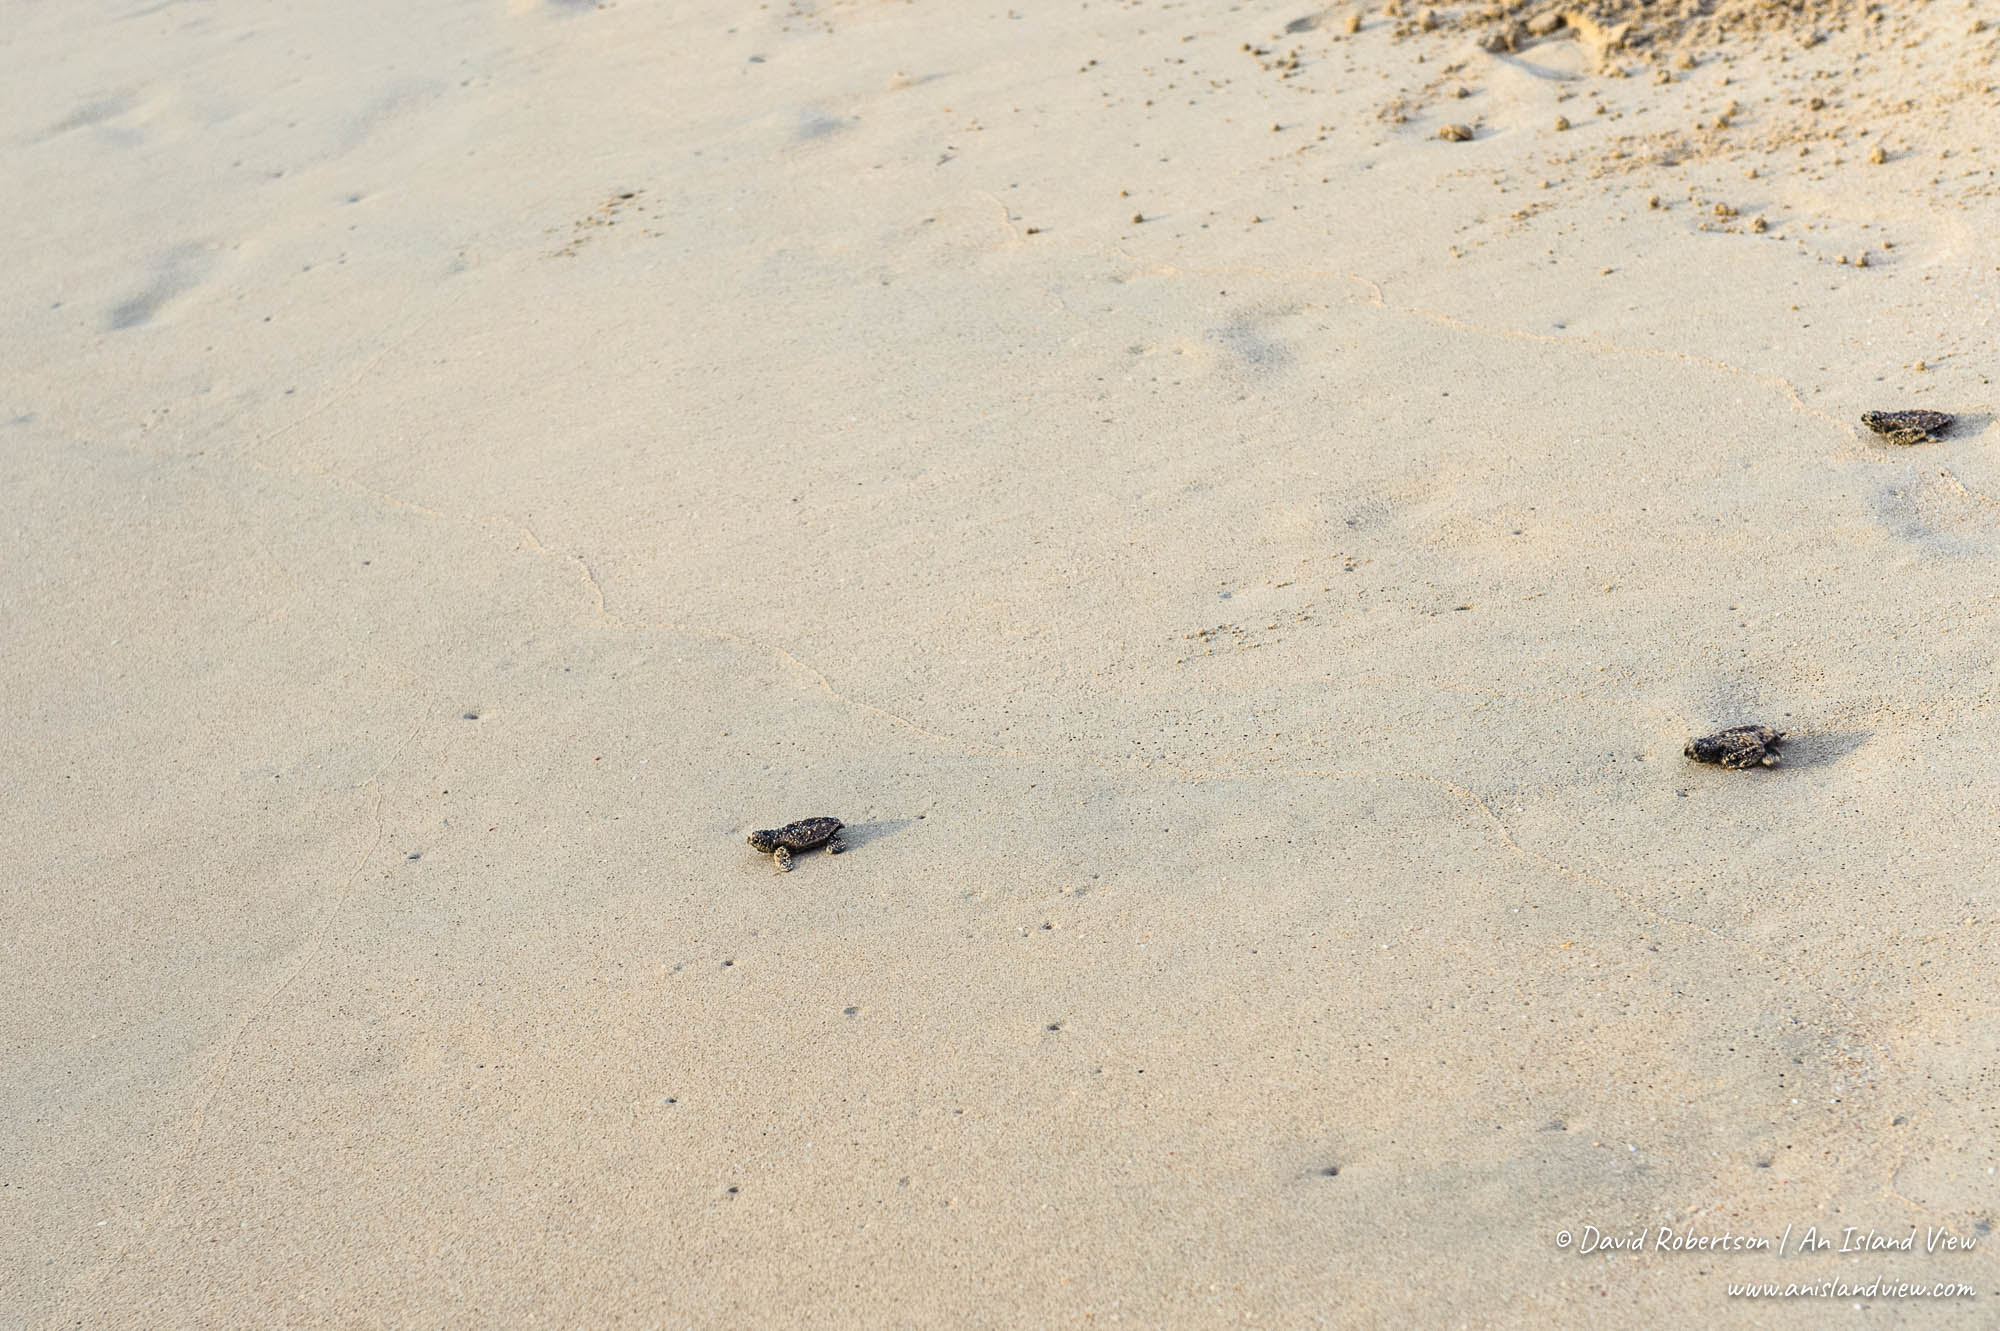 Turtle hatchlings crawling across the sand.